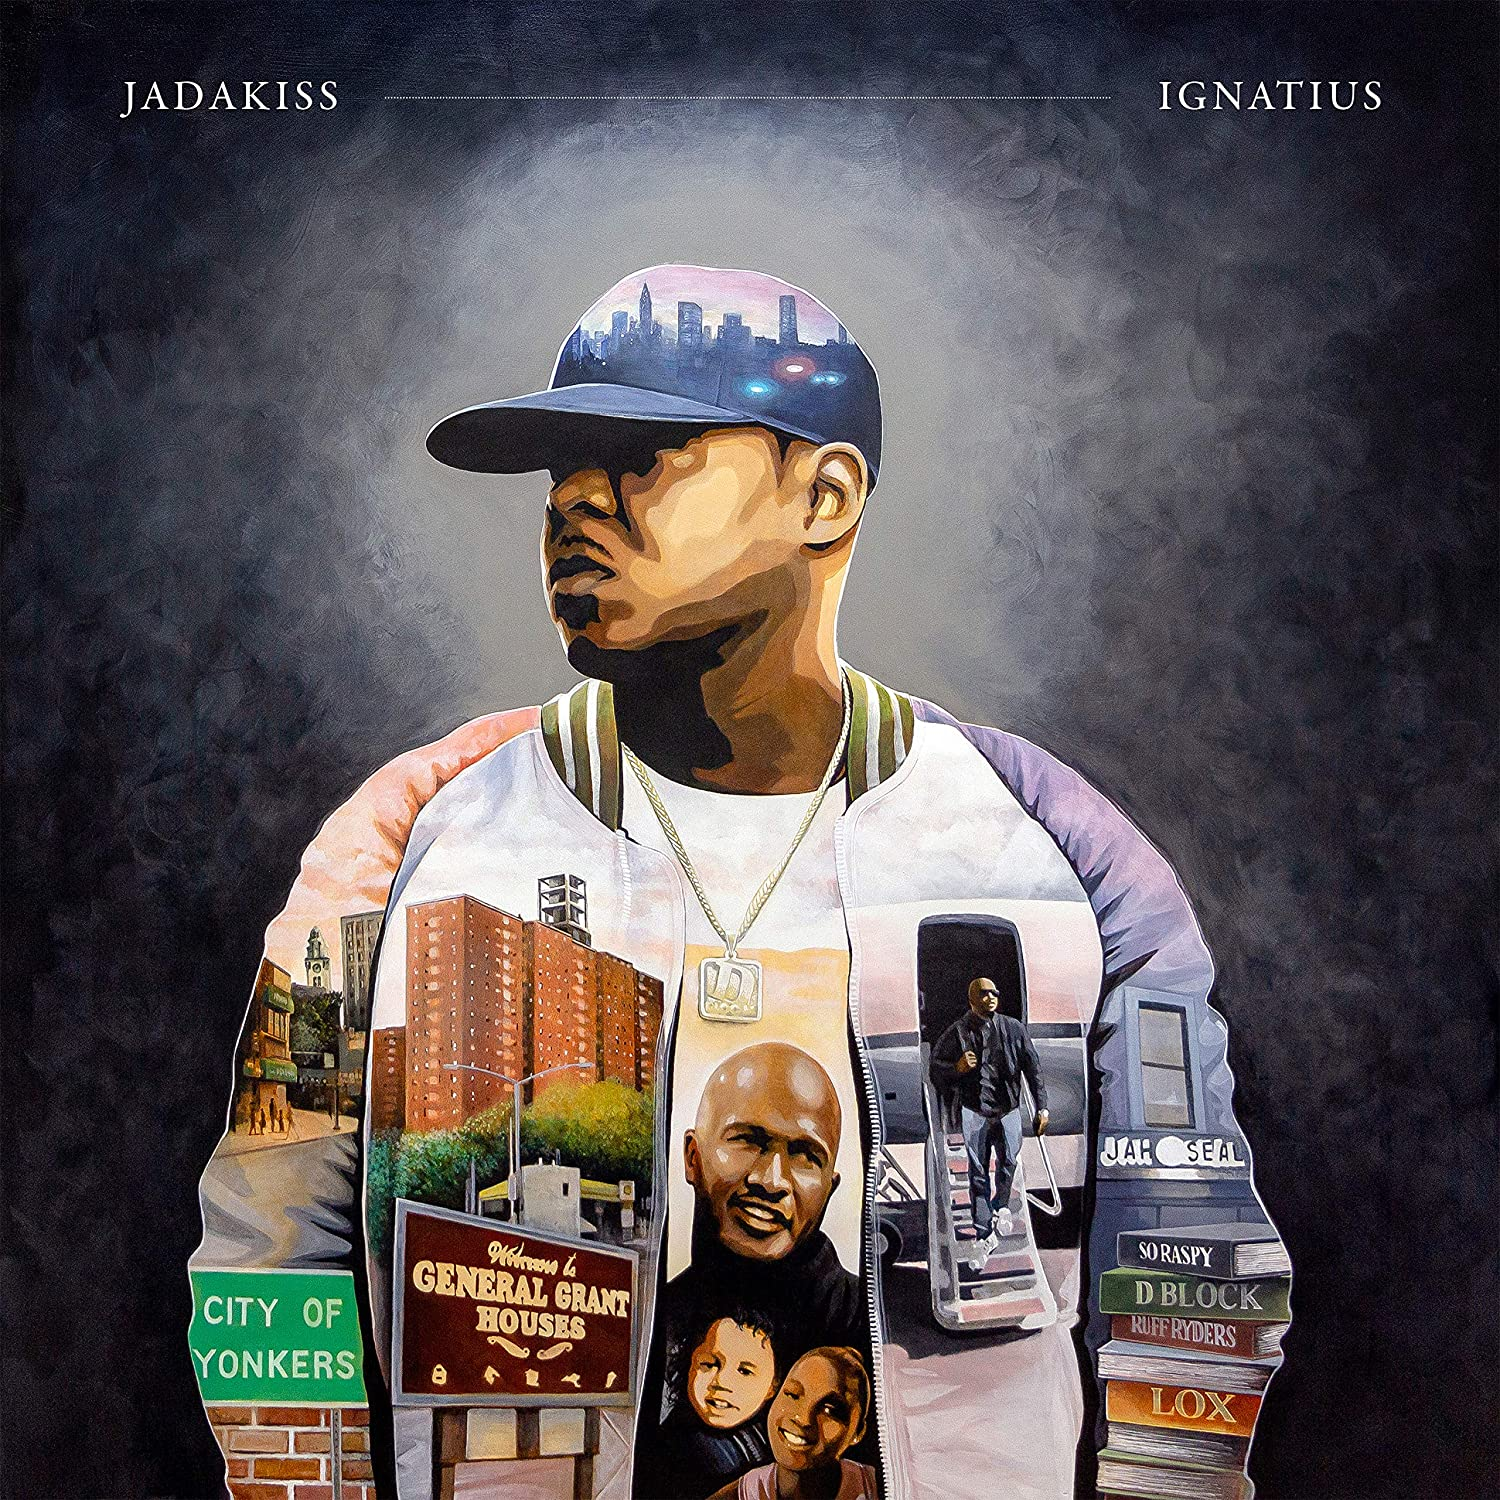 Jadakiss - Ignatius [LP] - Amazon.com Music